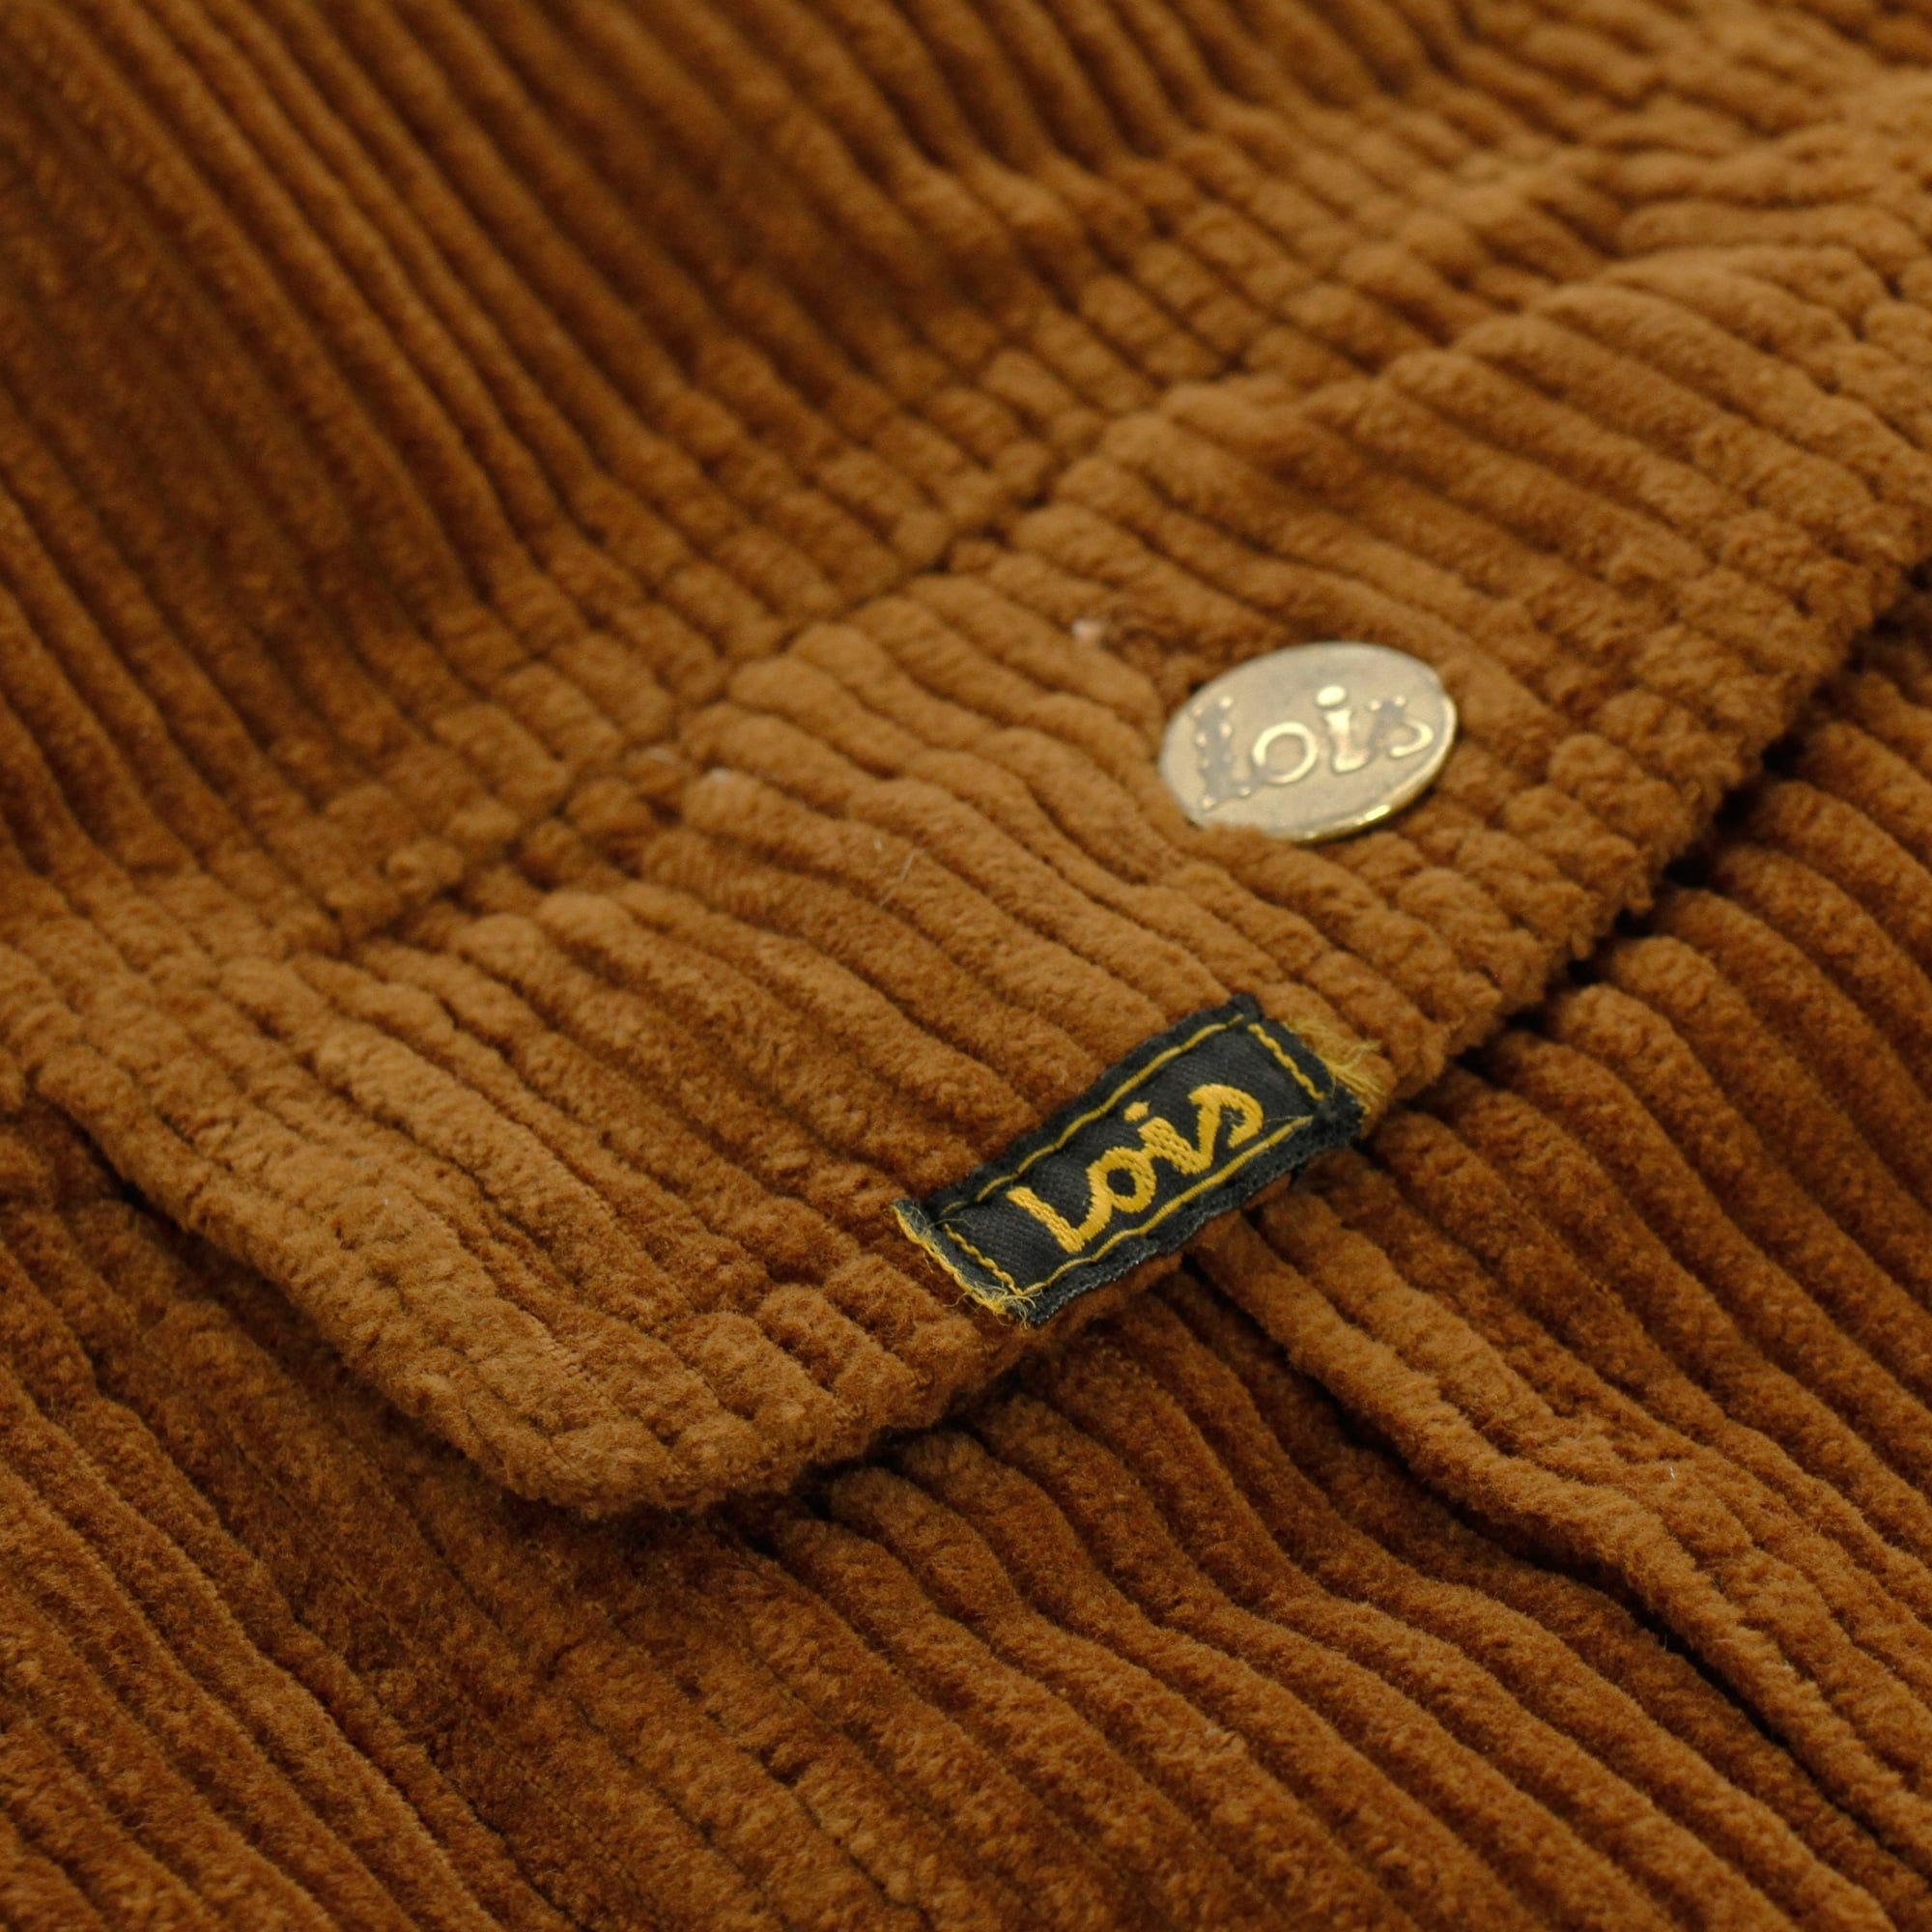 lois-jeans-jumbo-cord-brown-corduroy-jacket-1001394br-p25382-98574_image